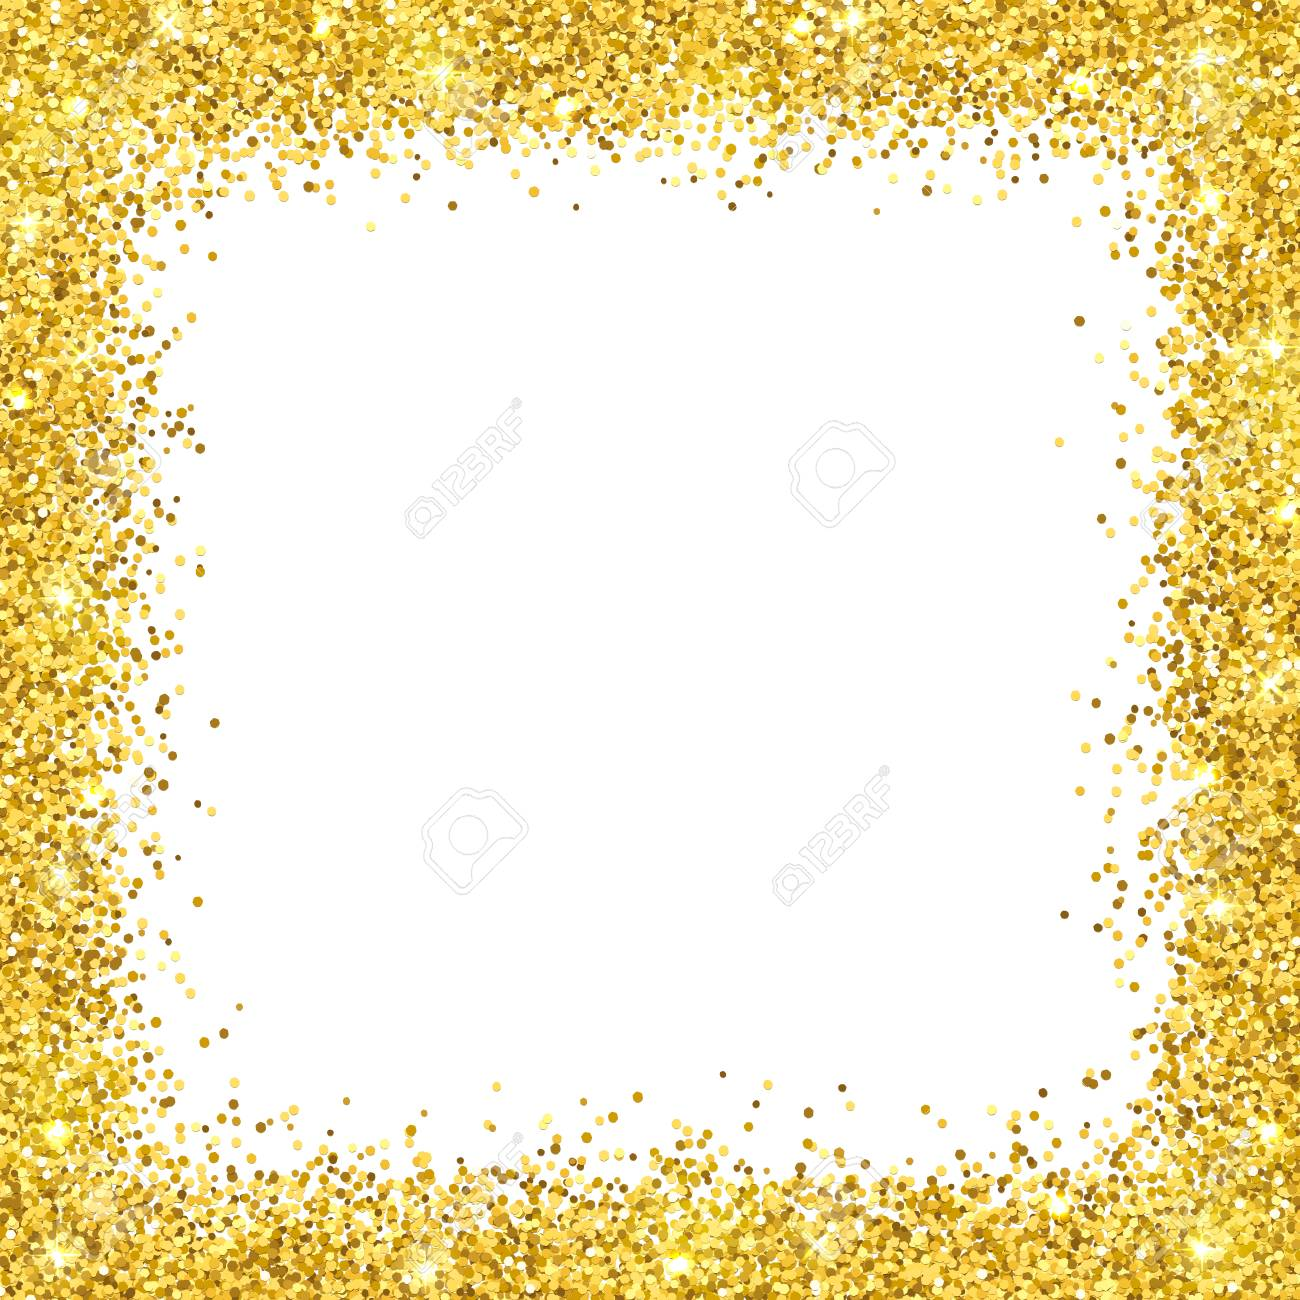 Fullsize Of Gold Glitter Border